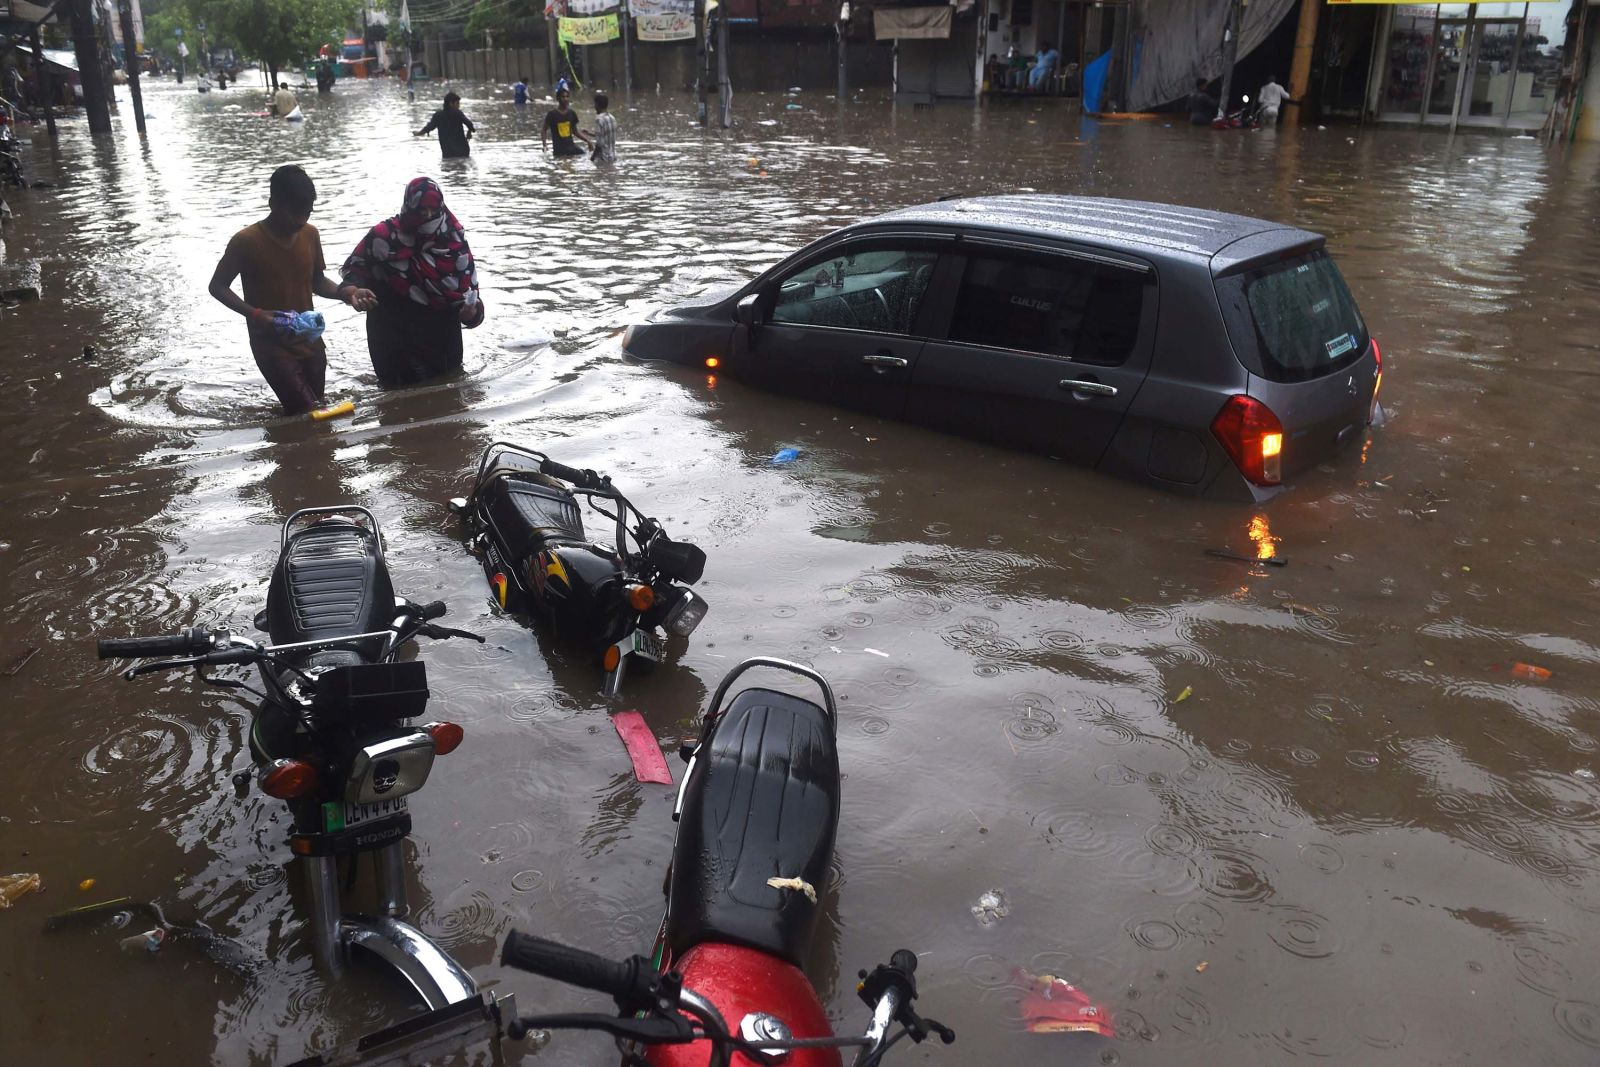 In pictures: Flooding across South Asia kills more than 100